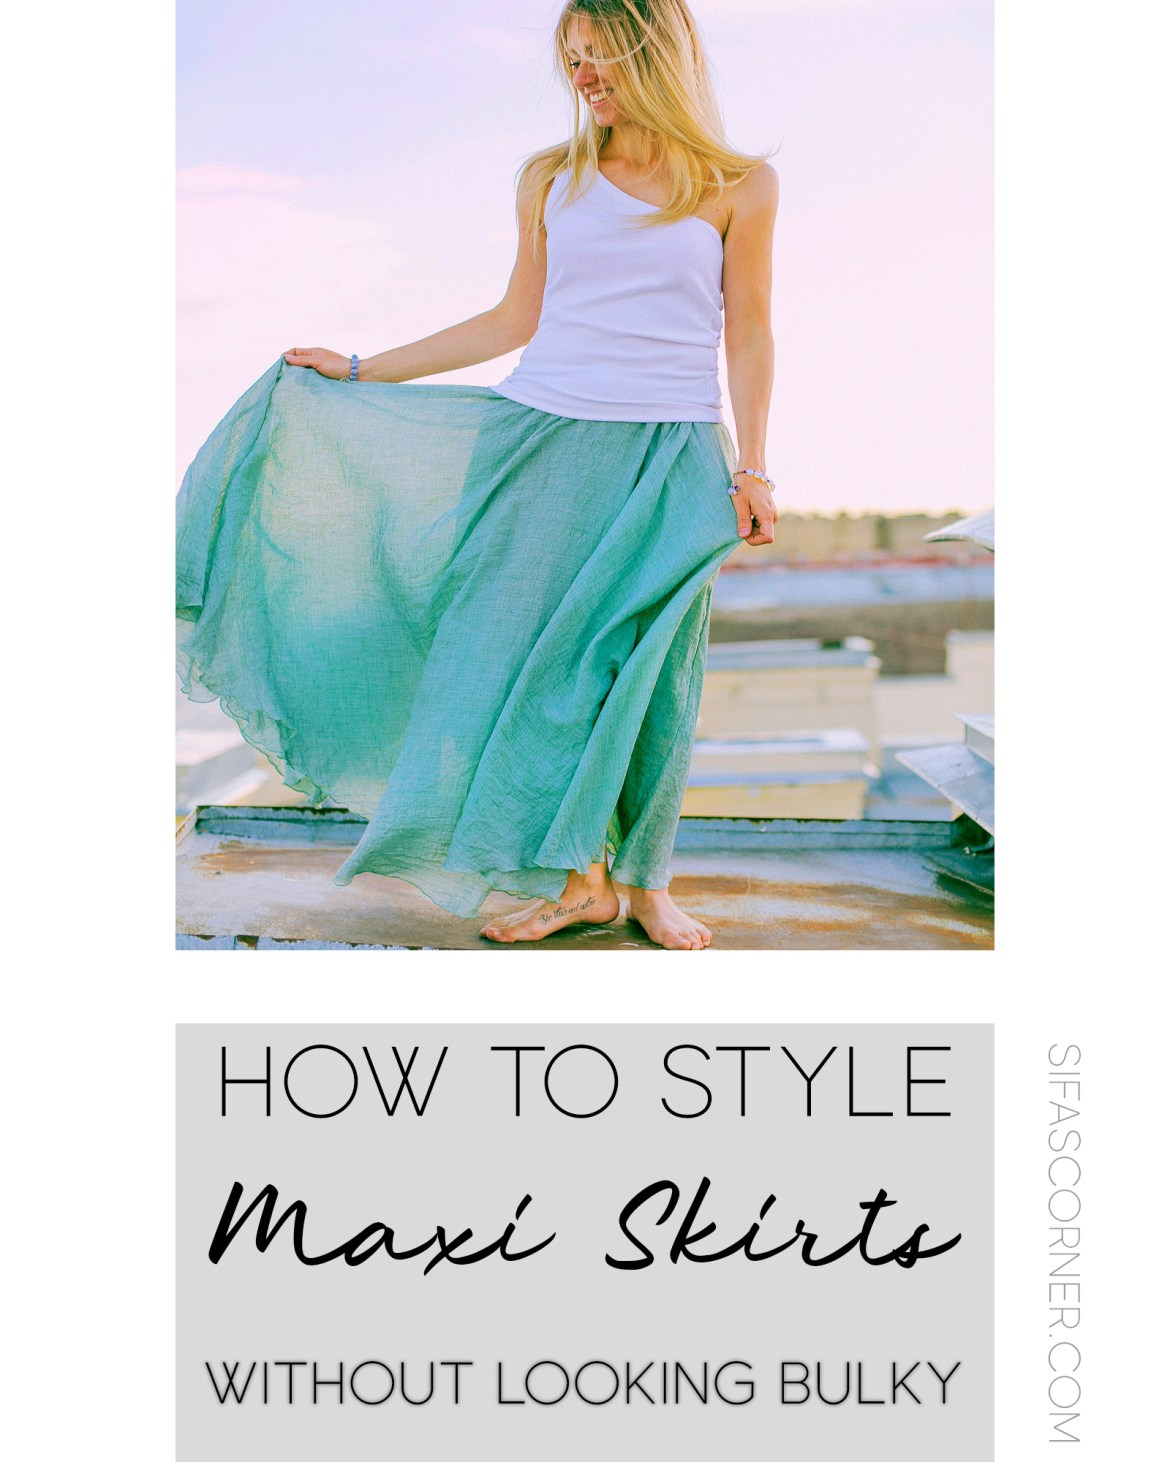 How to Style Maxi Skirts without Looking Bulky